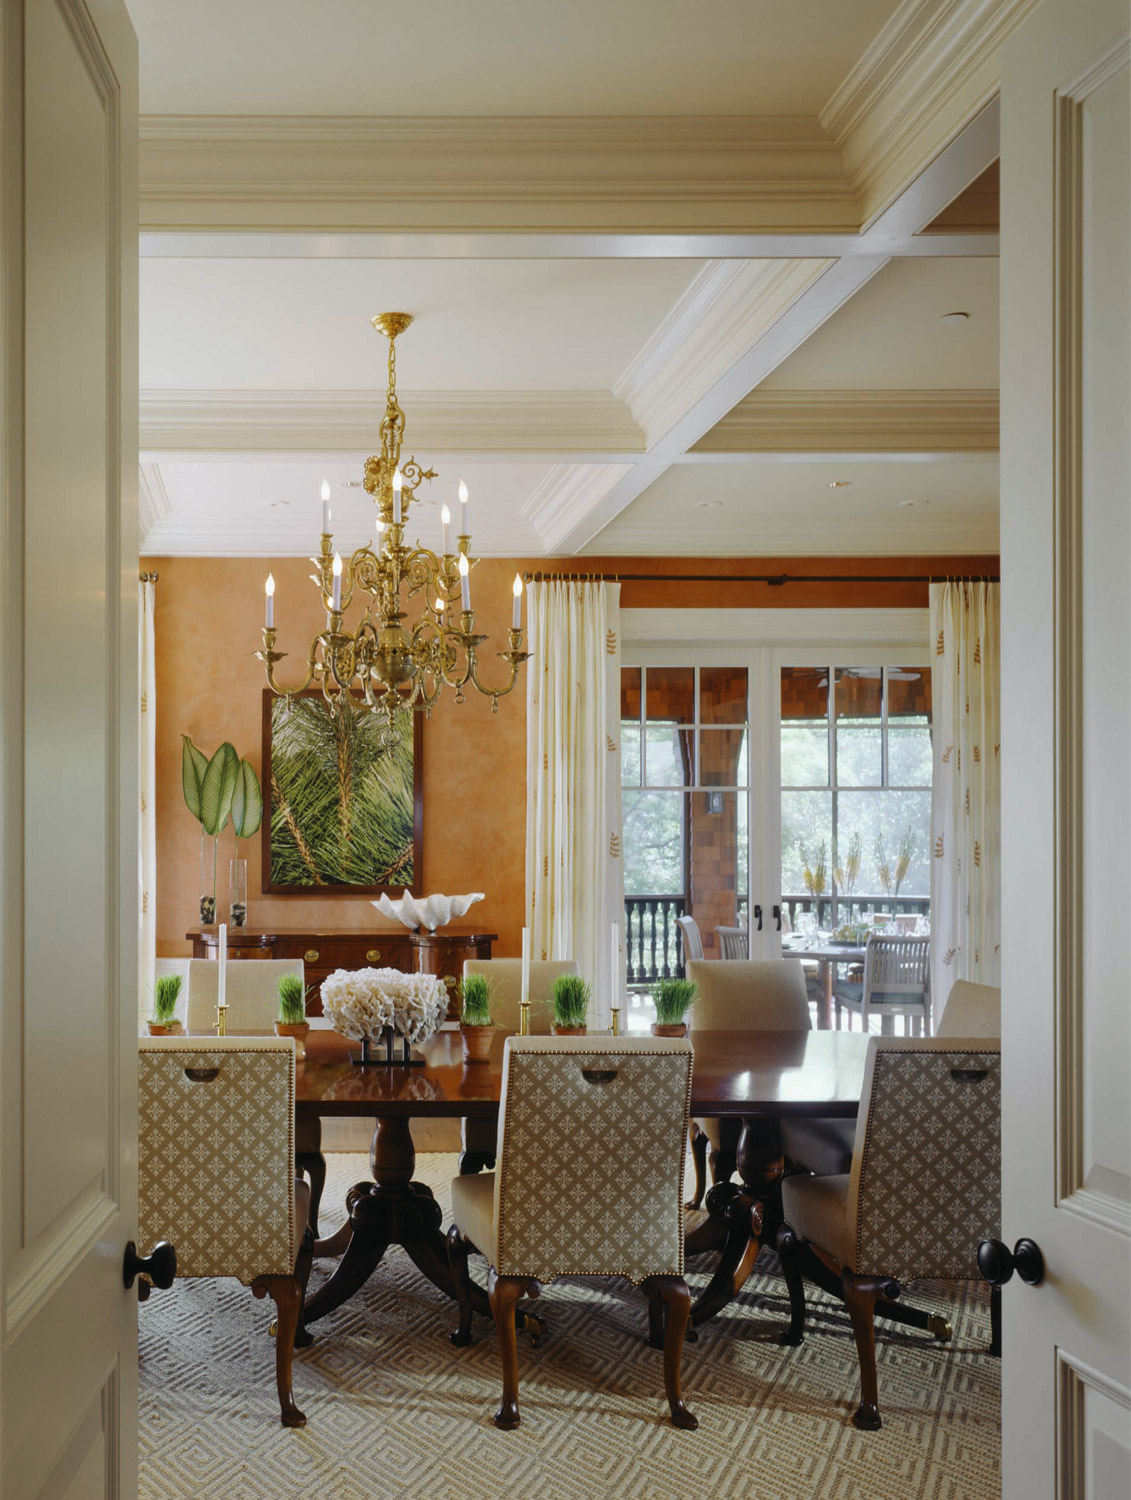 An example of Ellie Cullman's work.  Elegant and sophisticated.  Wonderful if you are looking for a formal dining room.